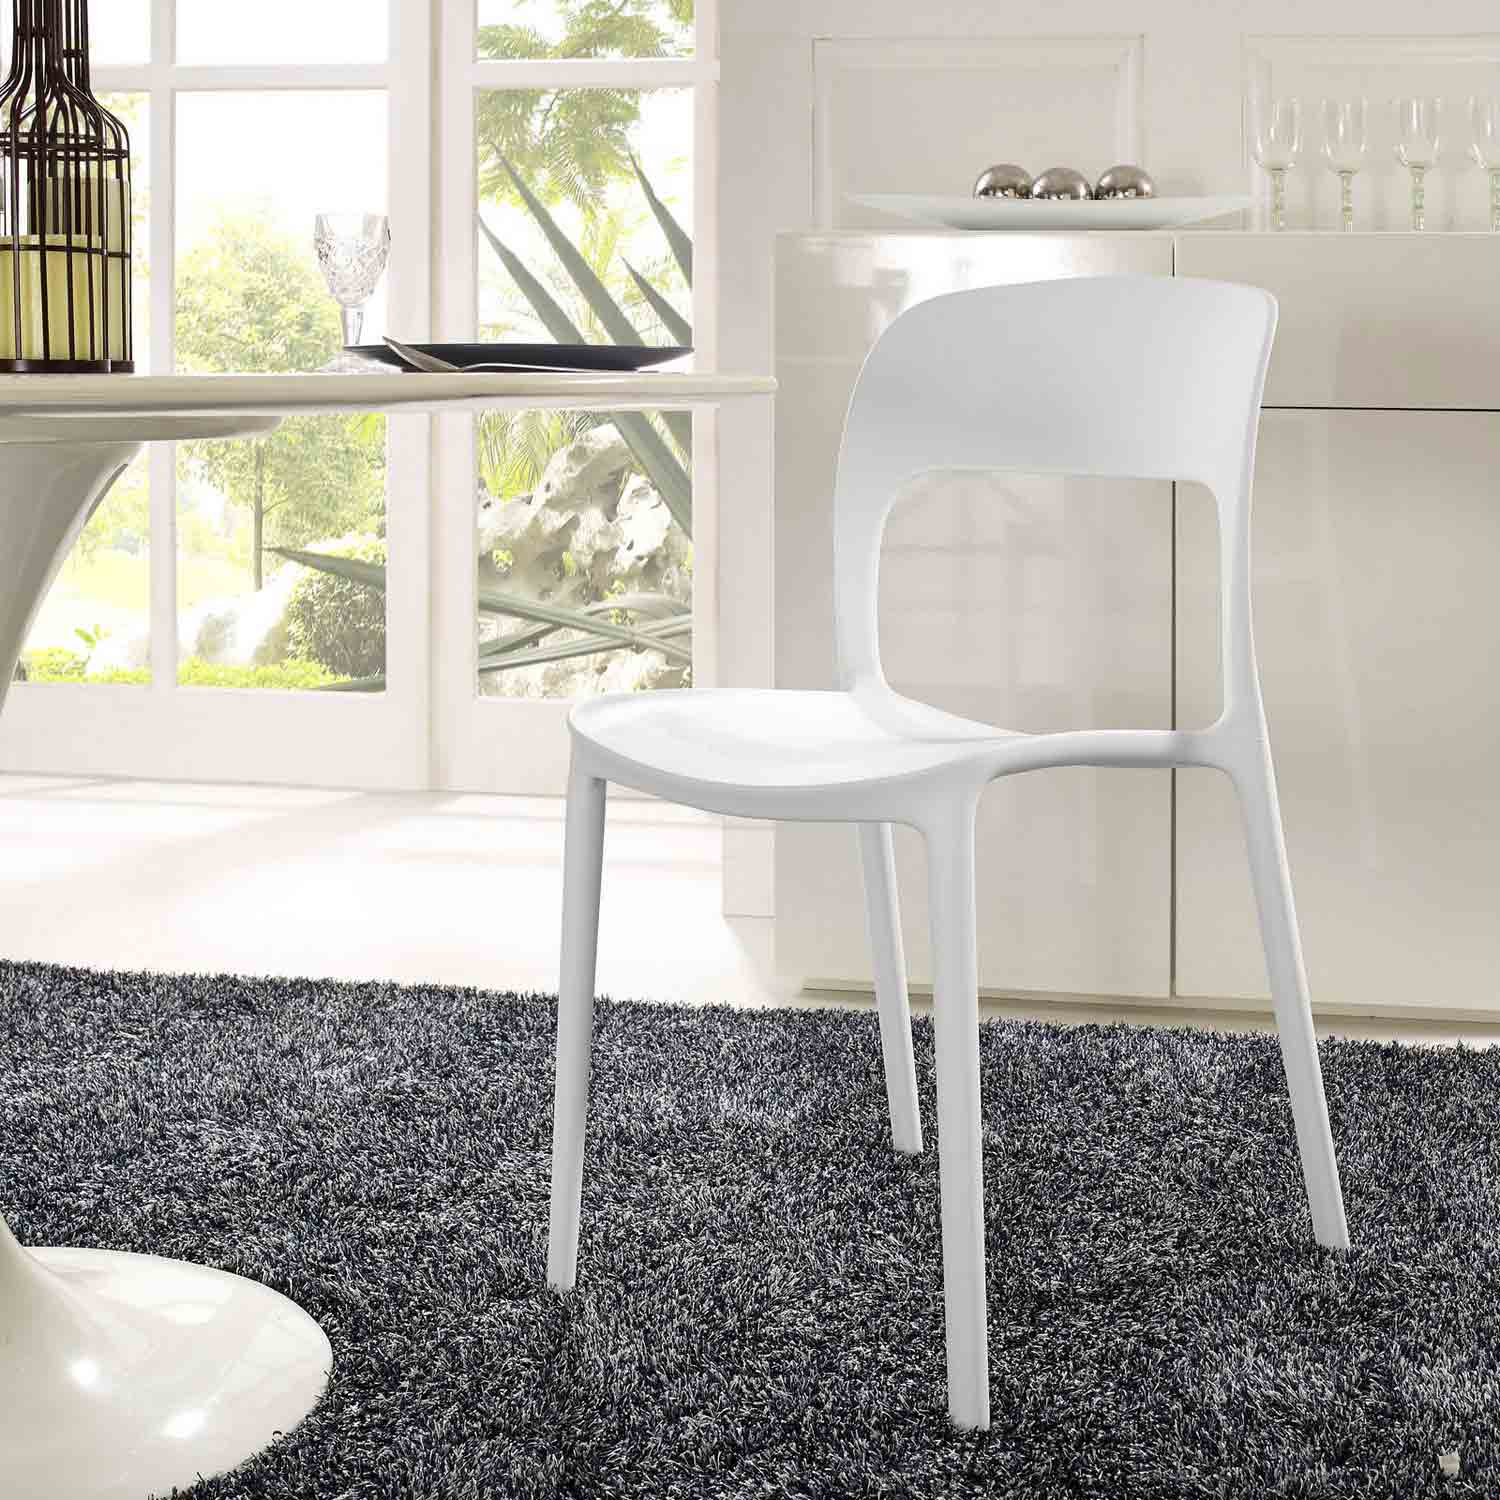 Modway Hop Dining Side Chair - White